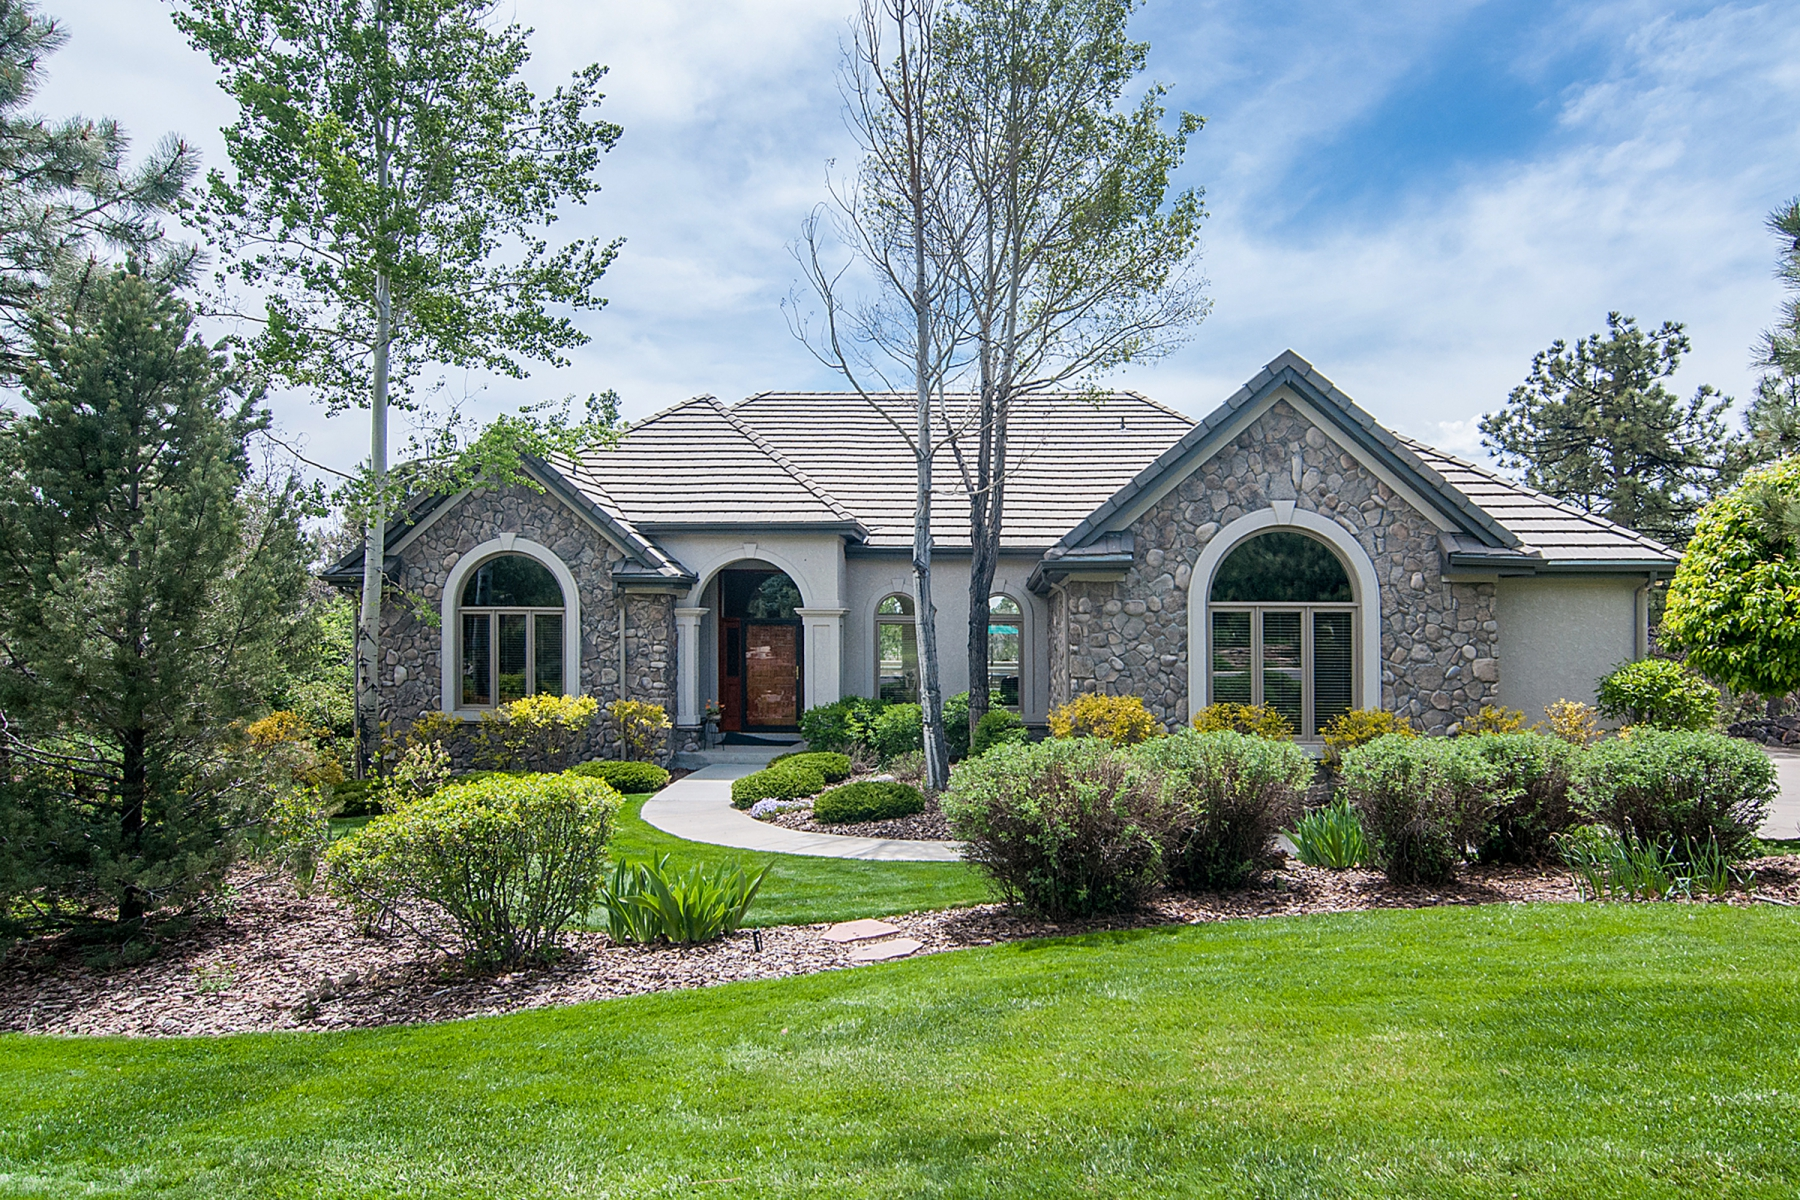 Single Family Home for Sale at 850 Swandyke Dr Castle Pines Village, Castle Rock, Colorado 80108 United States